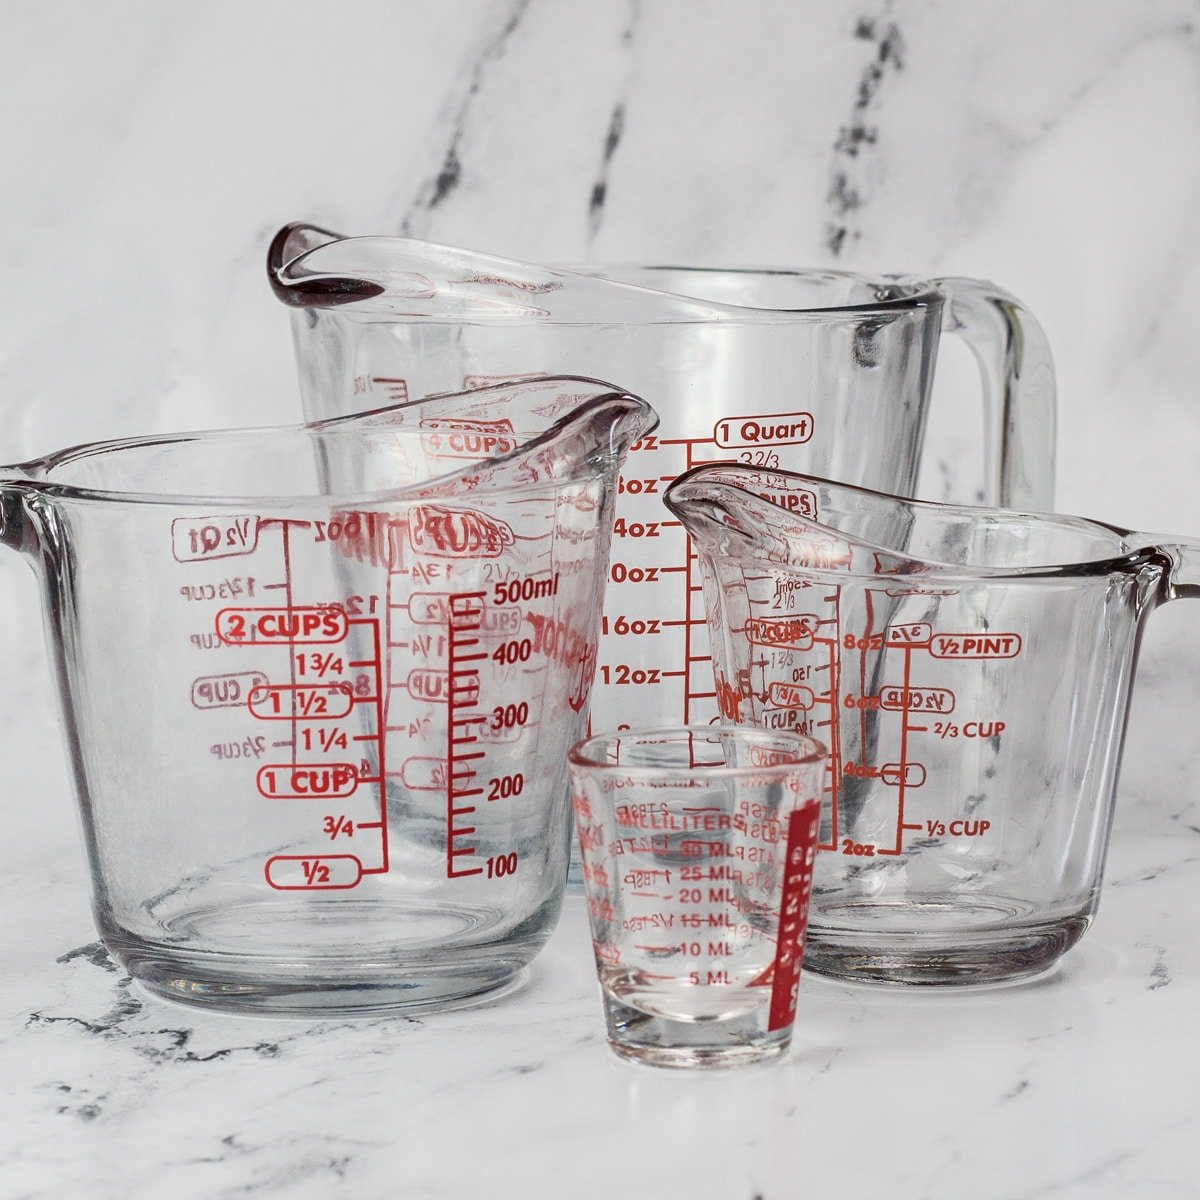 Liquid measuring cup sizes showing ounces in a quart.